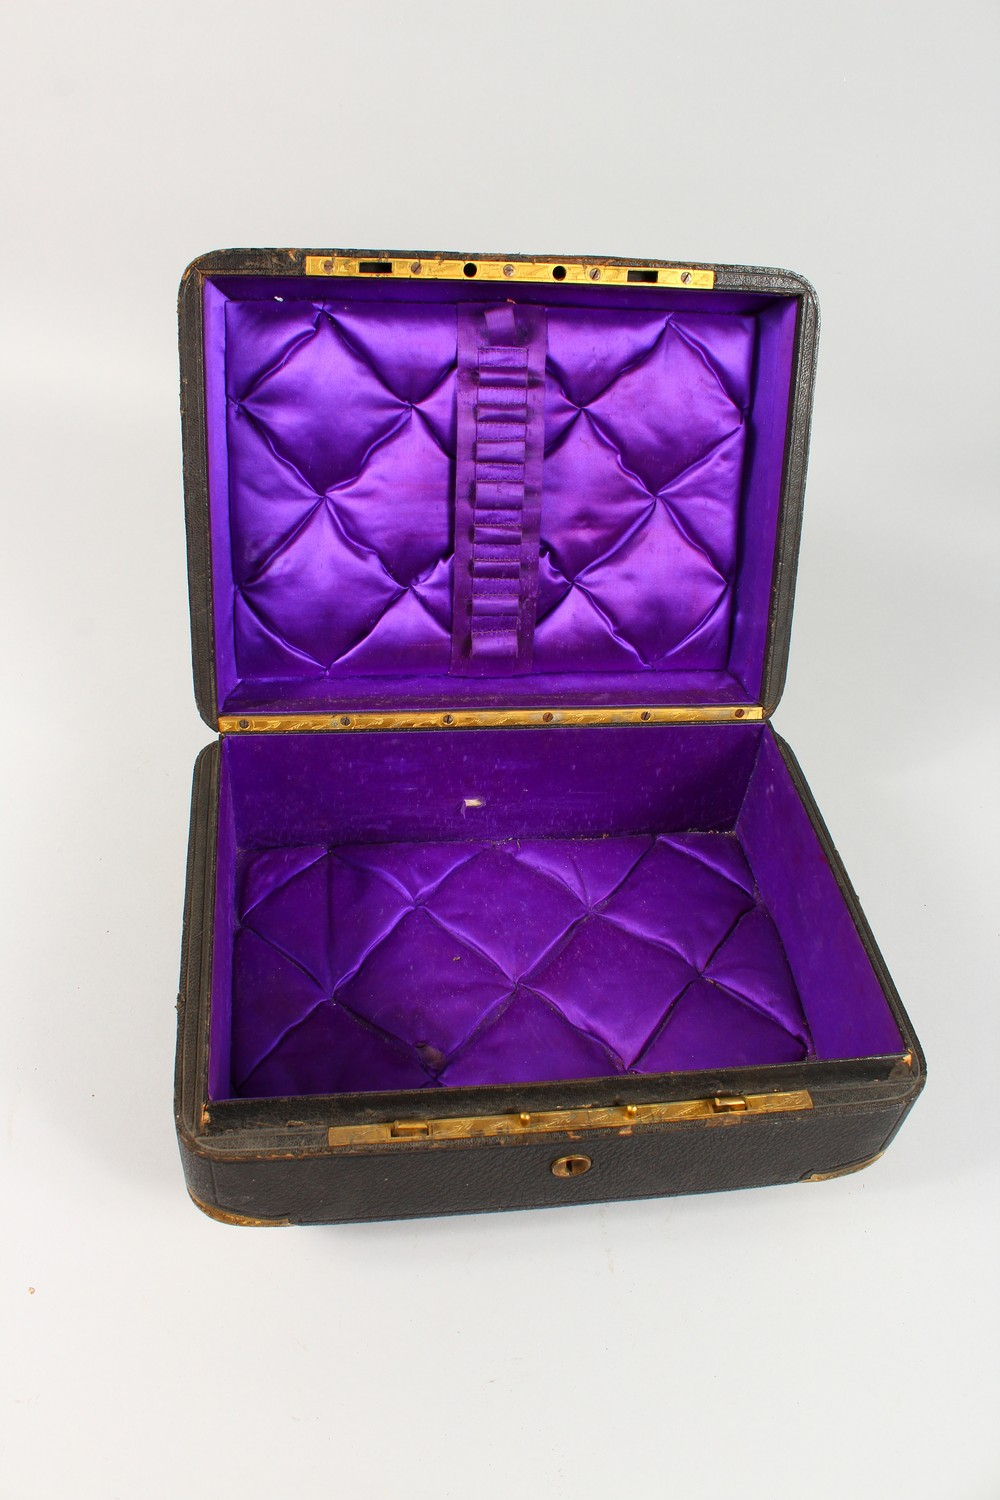 Lot 1416 - A GOOD VICTORIAN LEATHER SEWING BOX, with engraved brass corners, embossed brass floral mount and